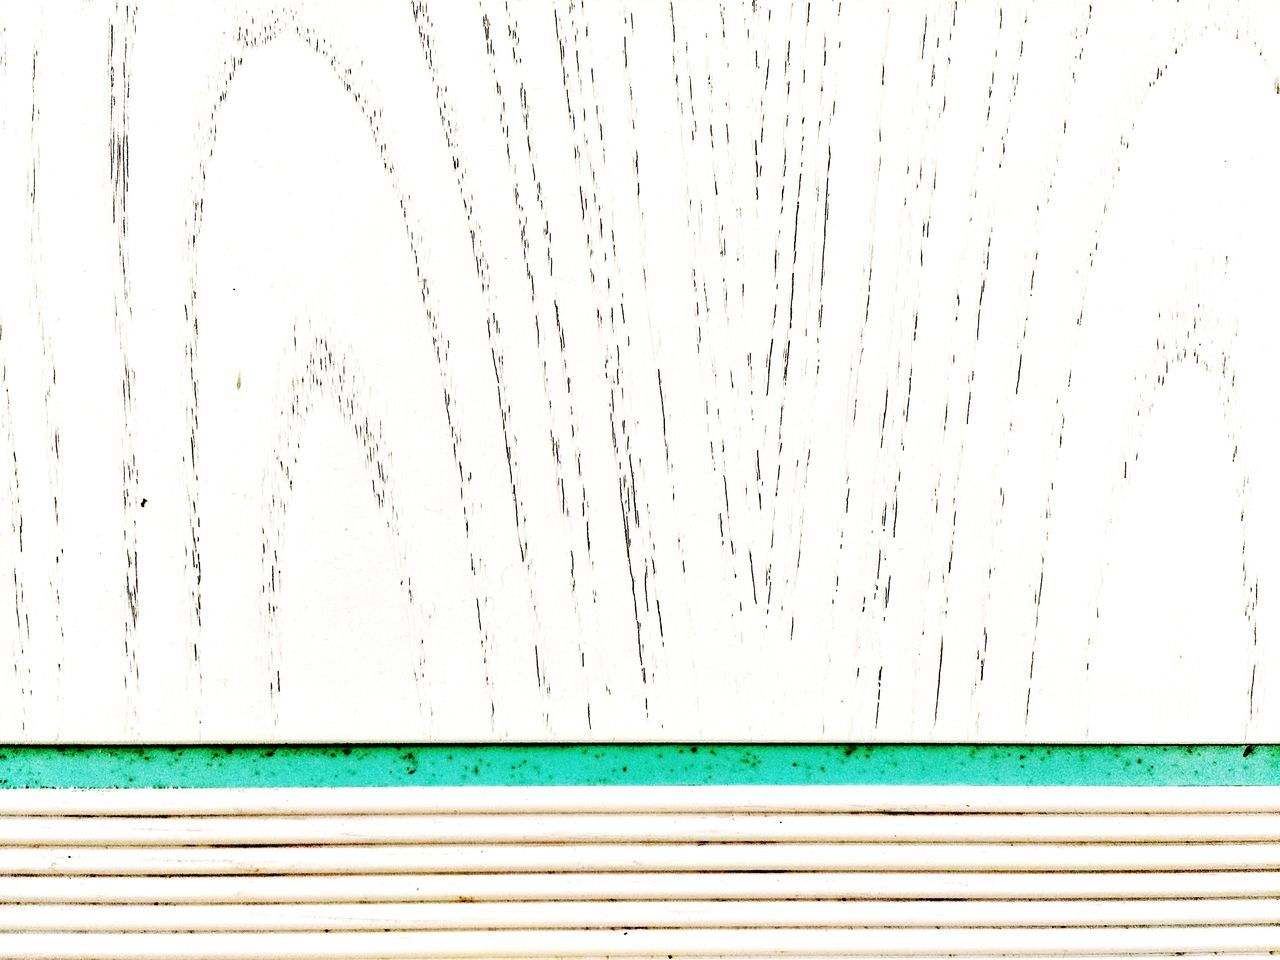 Scratched White Wooden Plank On Wall With Pipes